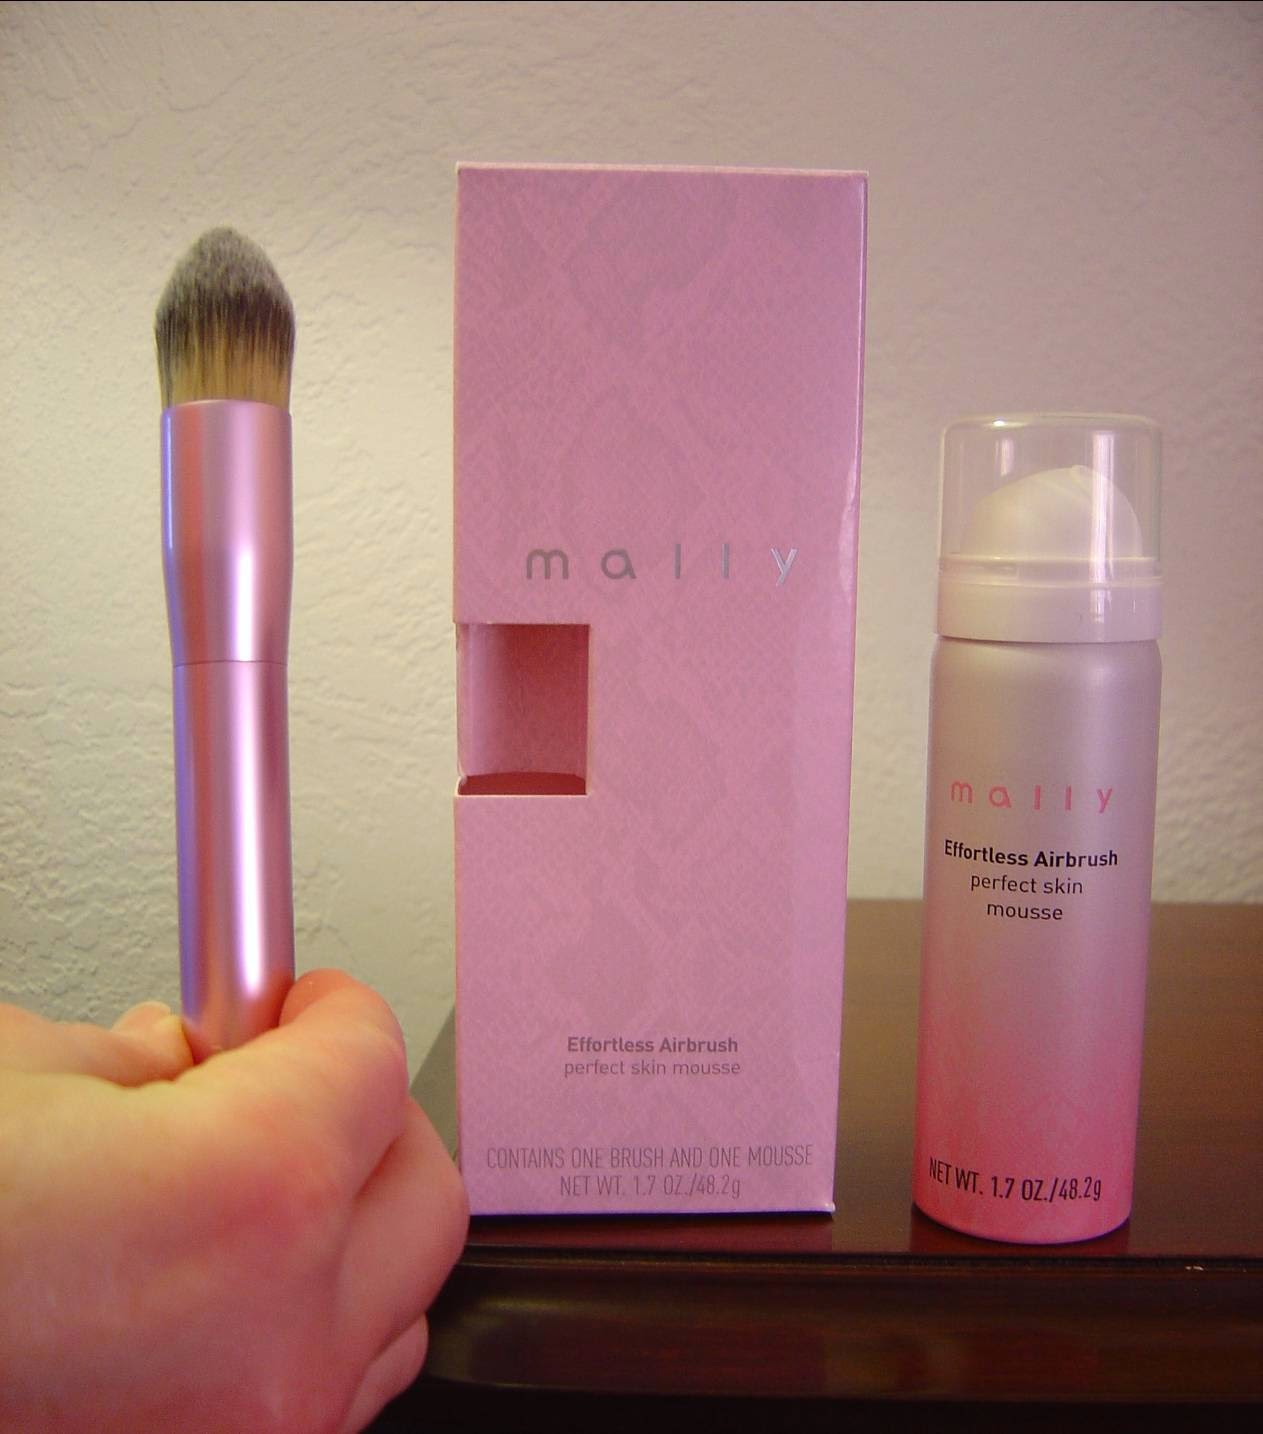 Mally Beauty's Effortless Airbrush Perfect Skin Mousse (Light) and Brush.jpeg